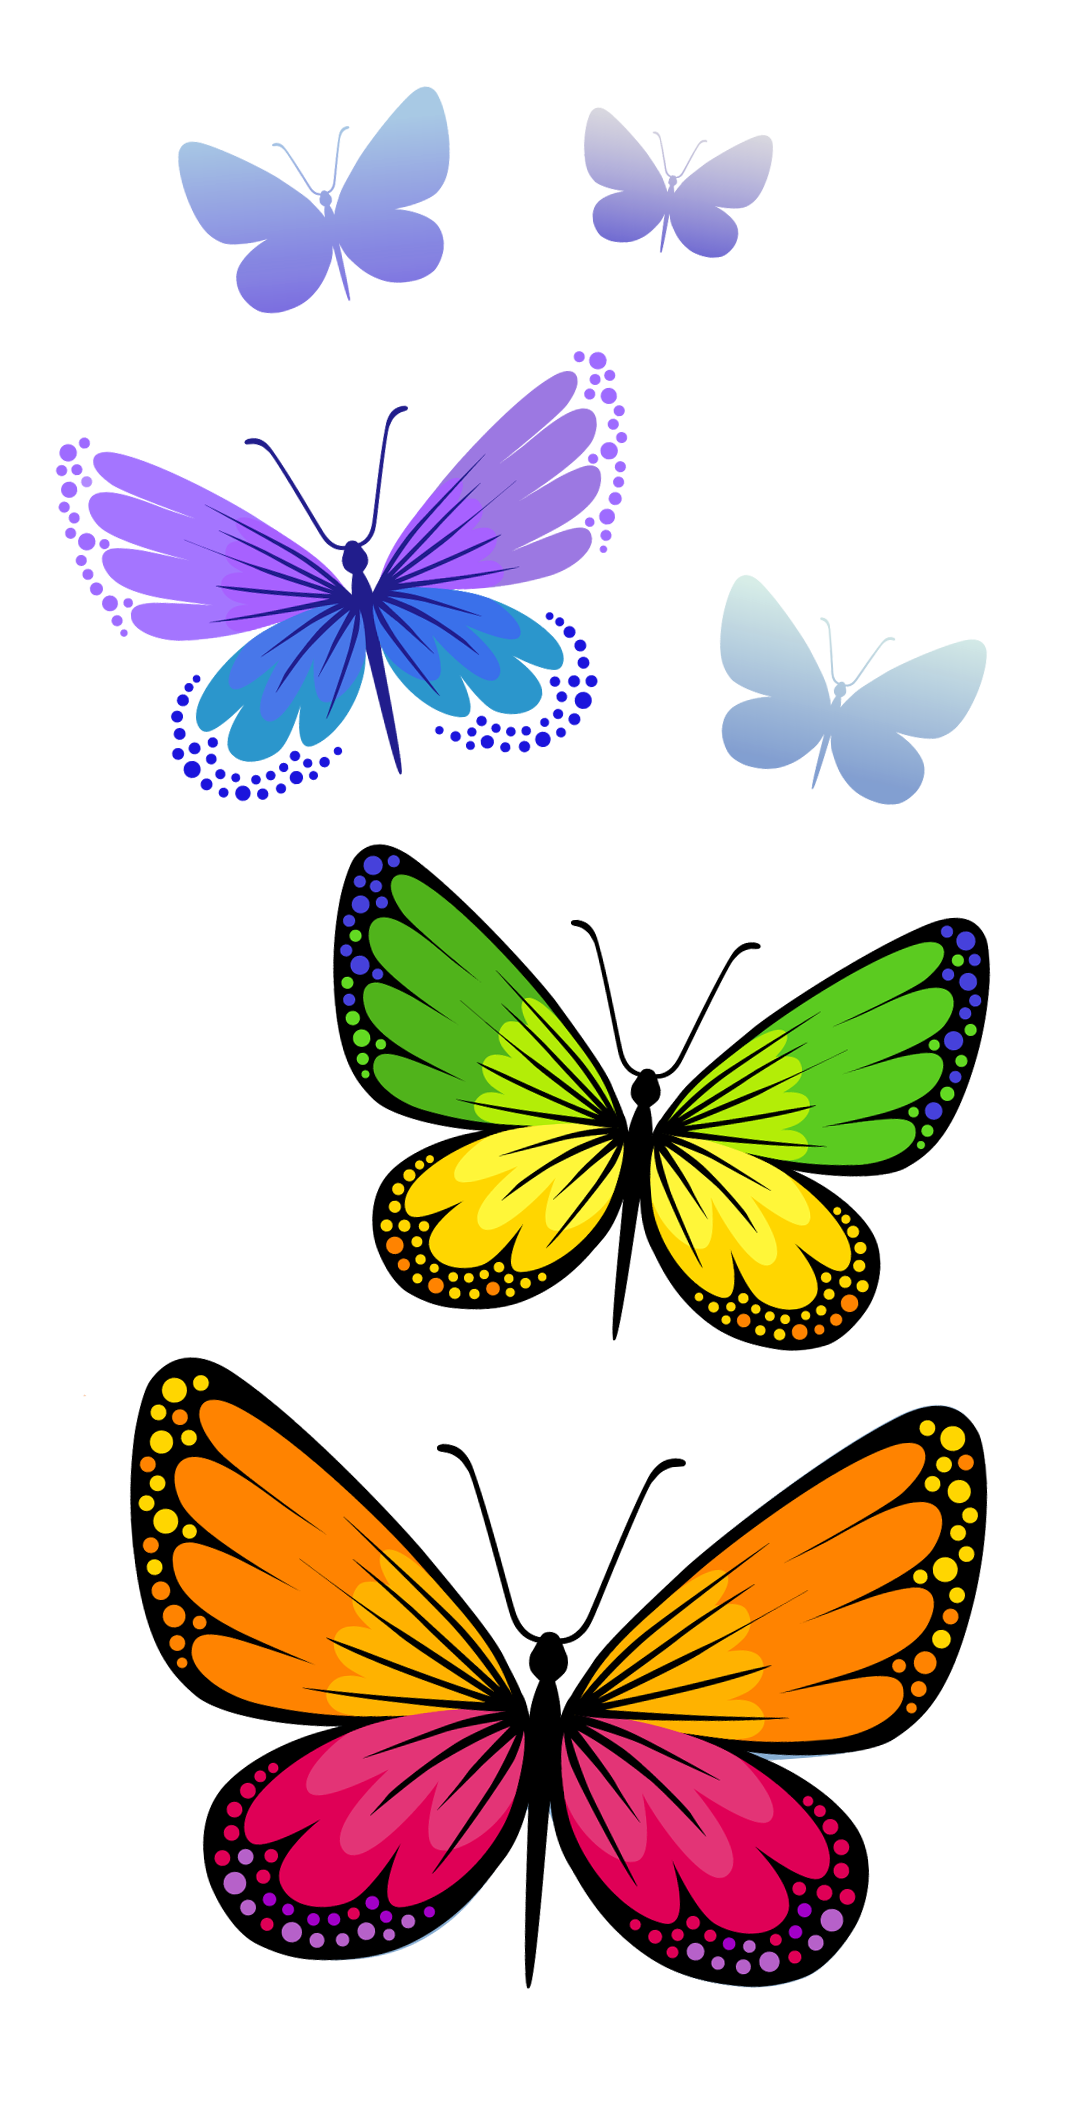 Butterfly clipart growth. Butterflies composition png image